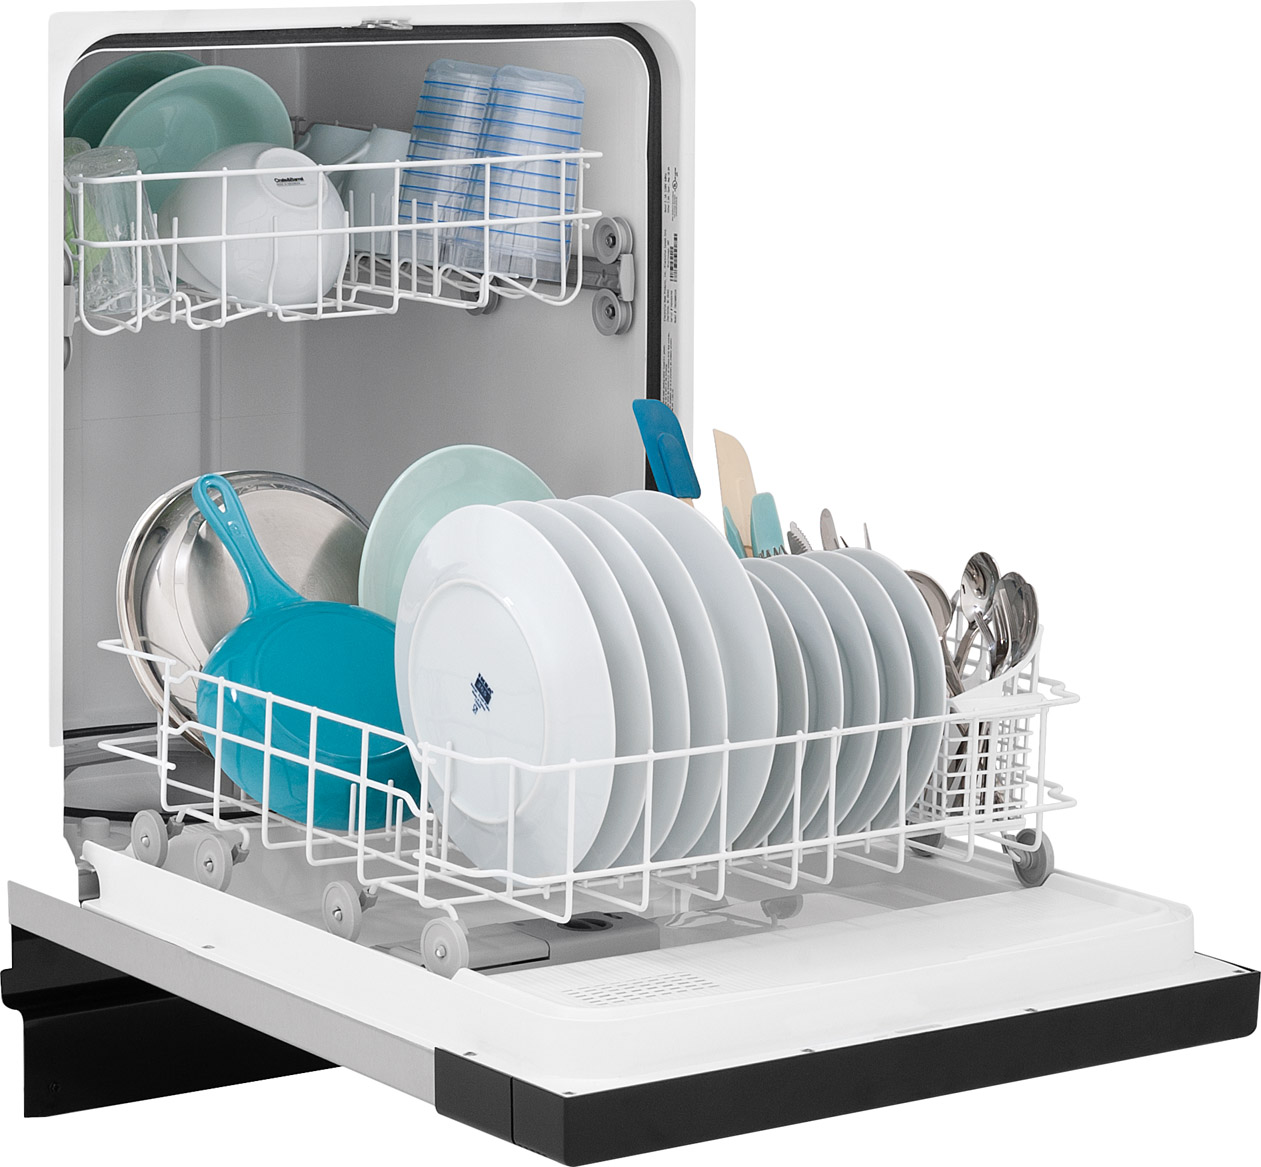 "Kenmore 14013 24"" Built-In Dishwasher -  Stainless"